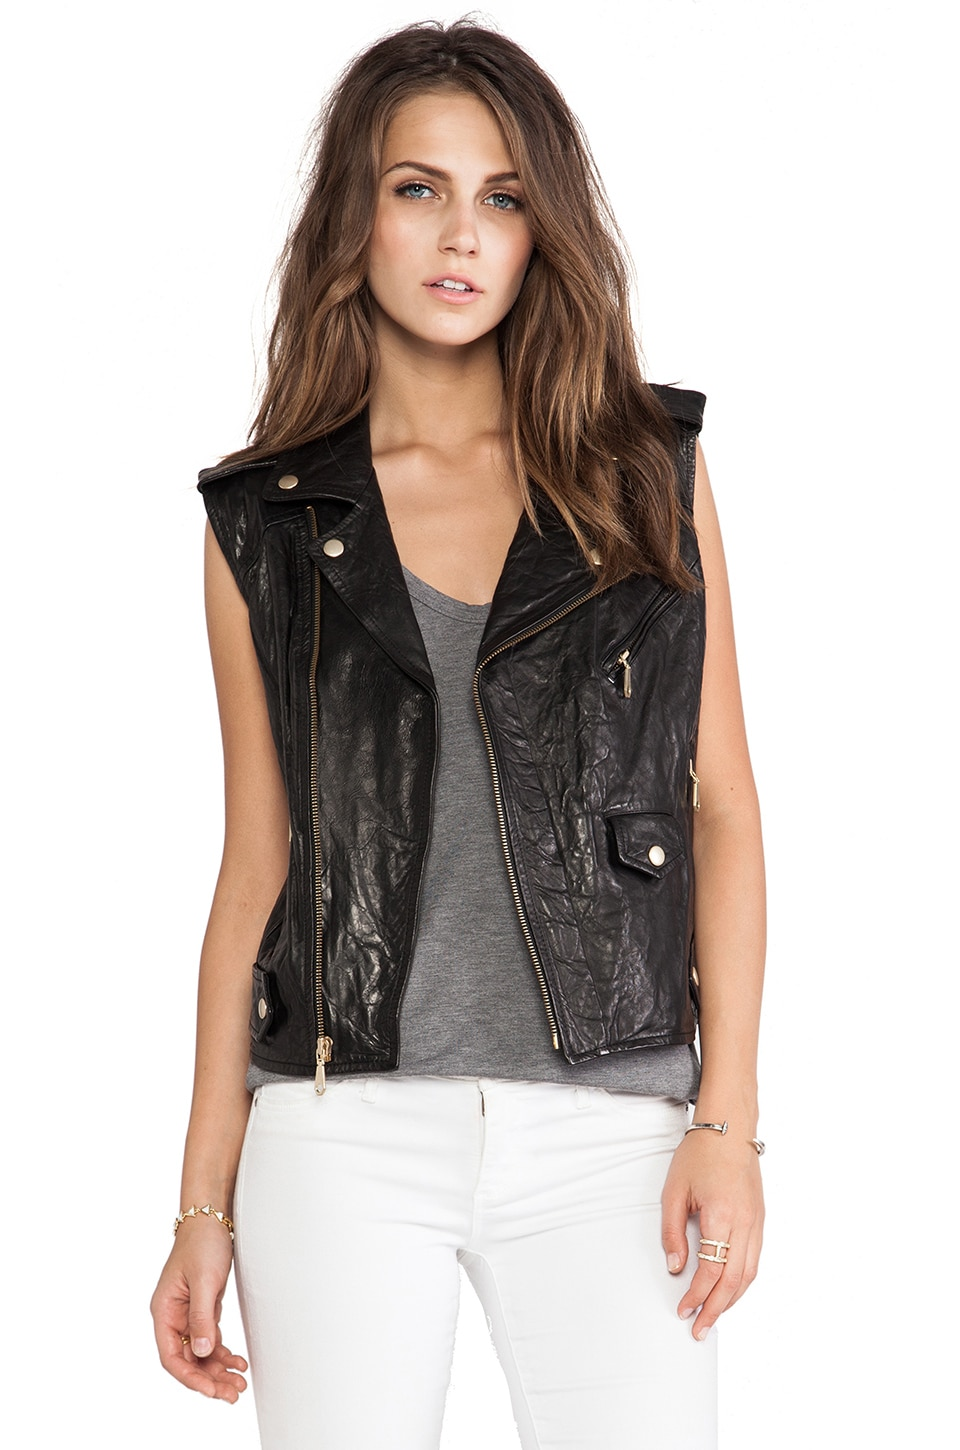 Rebecca Minkoff Leandra Leather Vest in Black